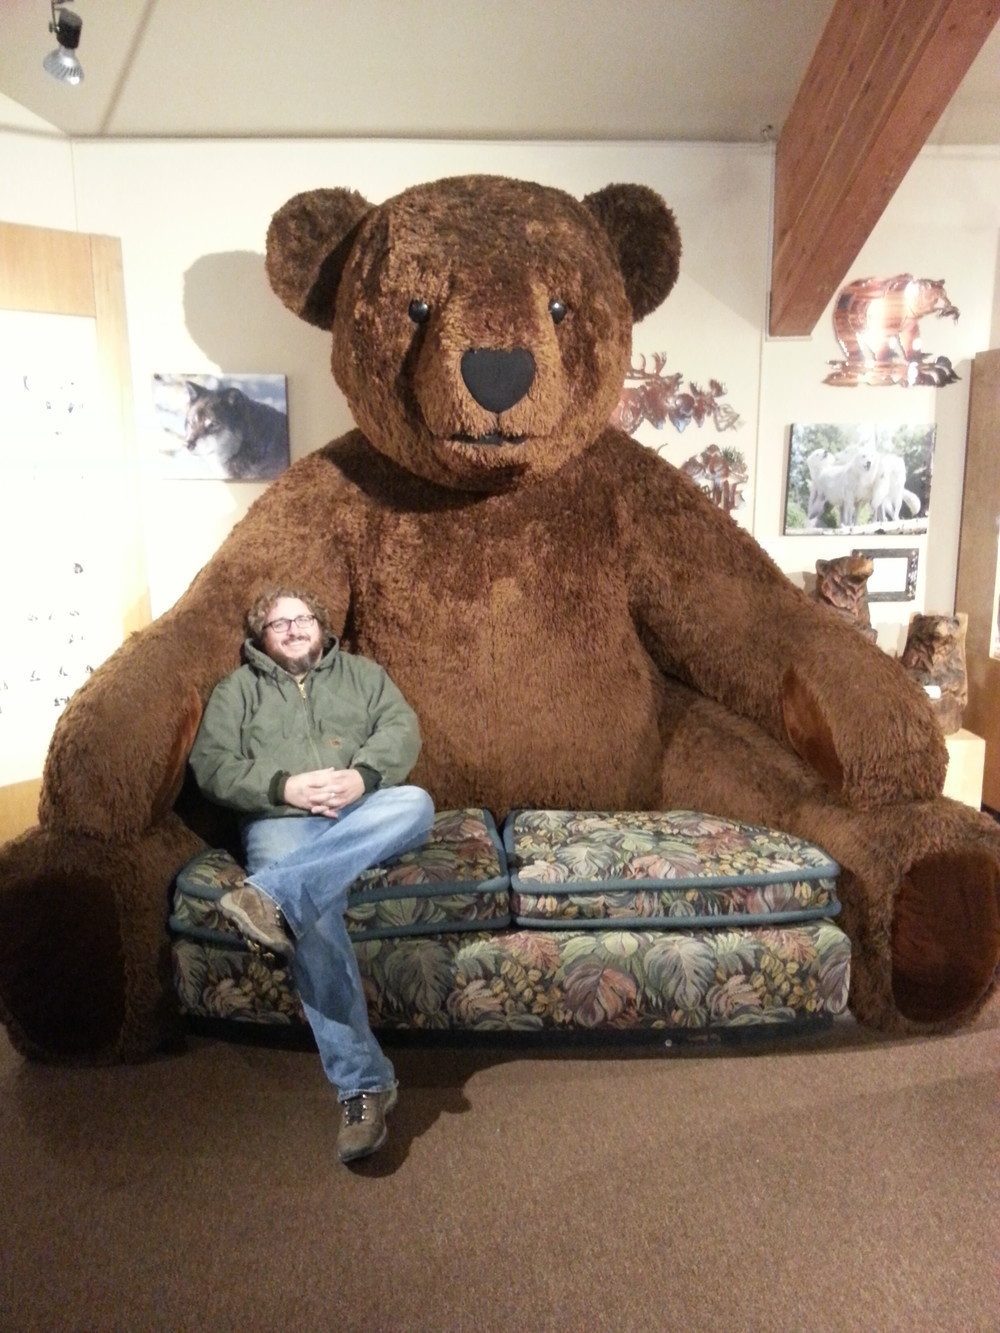 A bear of a couch.